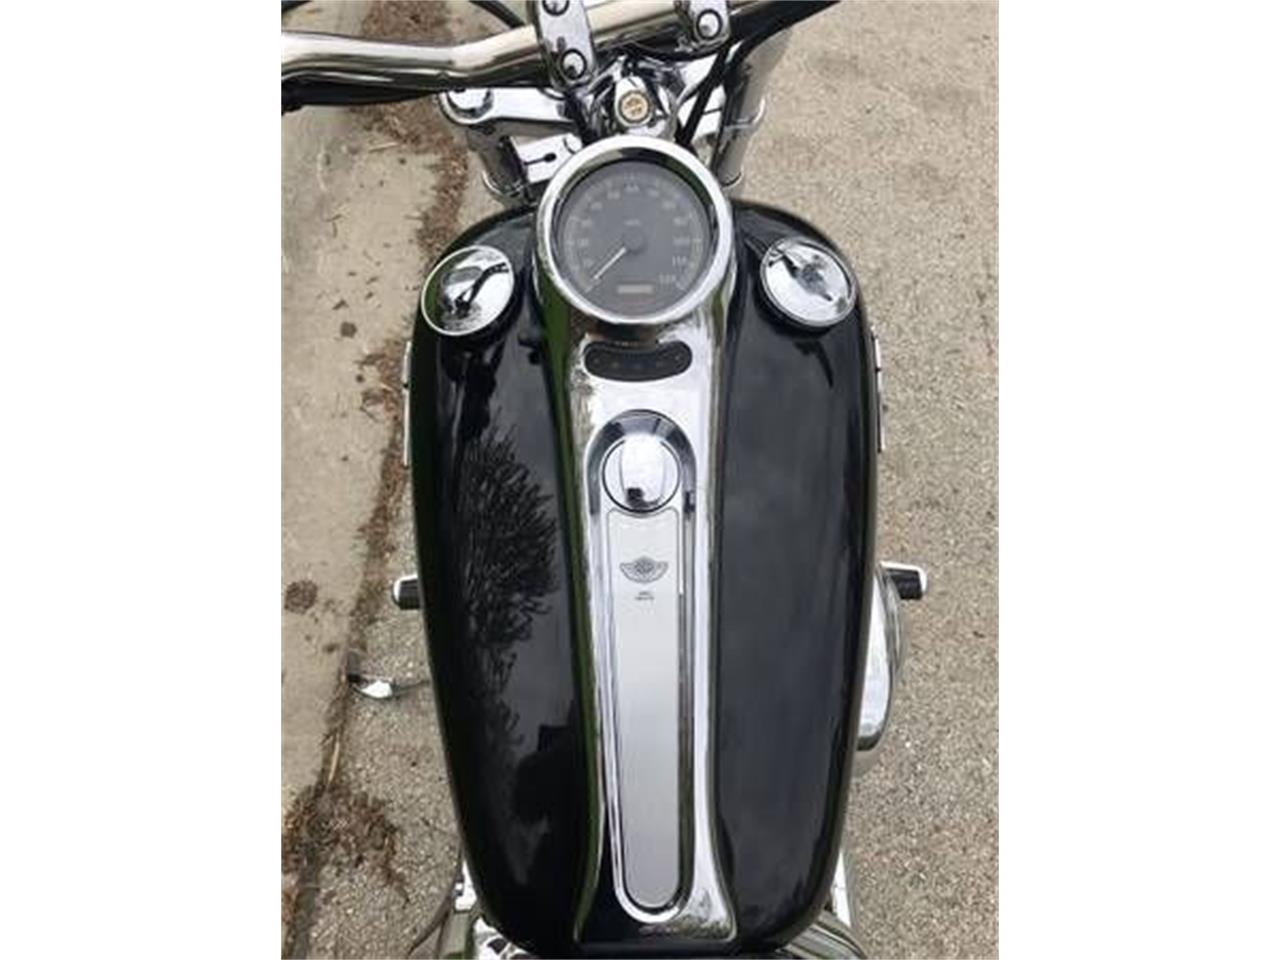 2003 Harley-Davidson Softail for sale in Cadillac, MI – photo 6